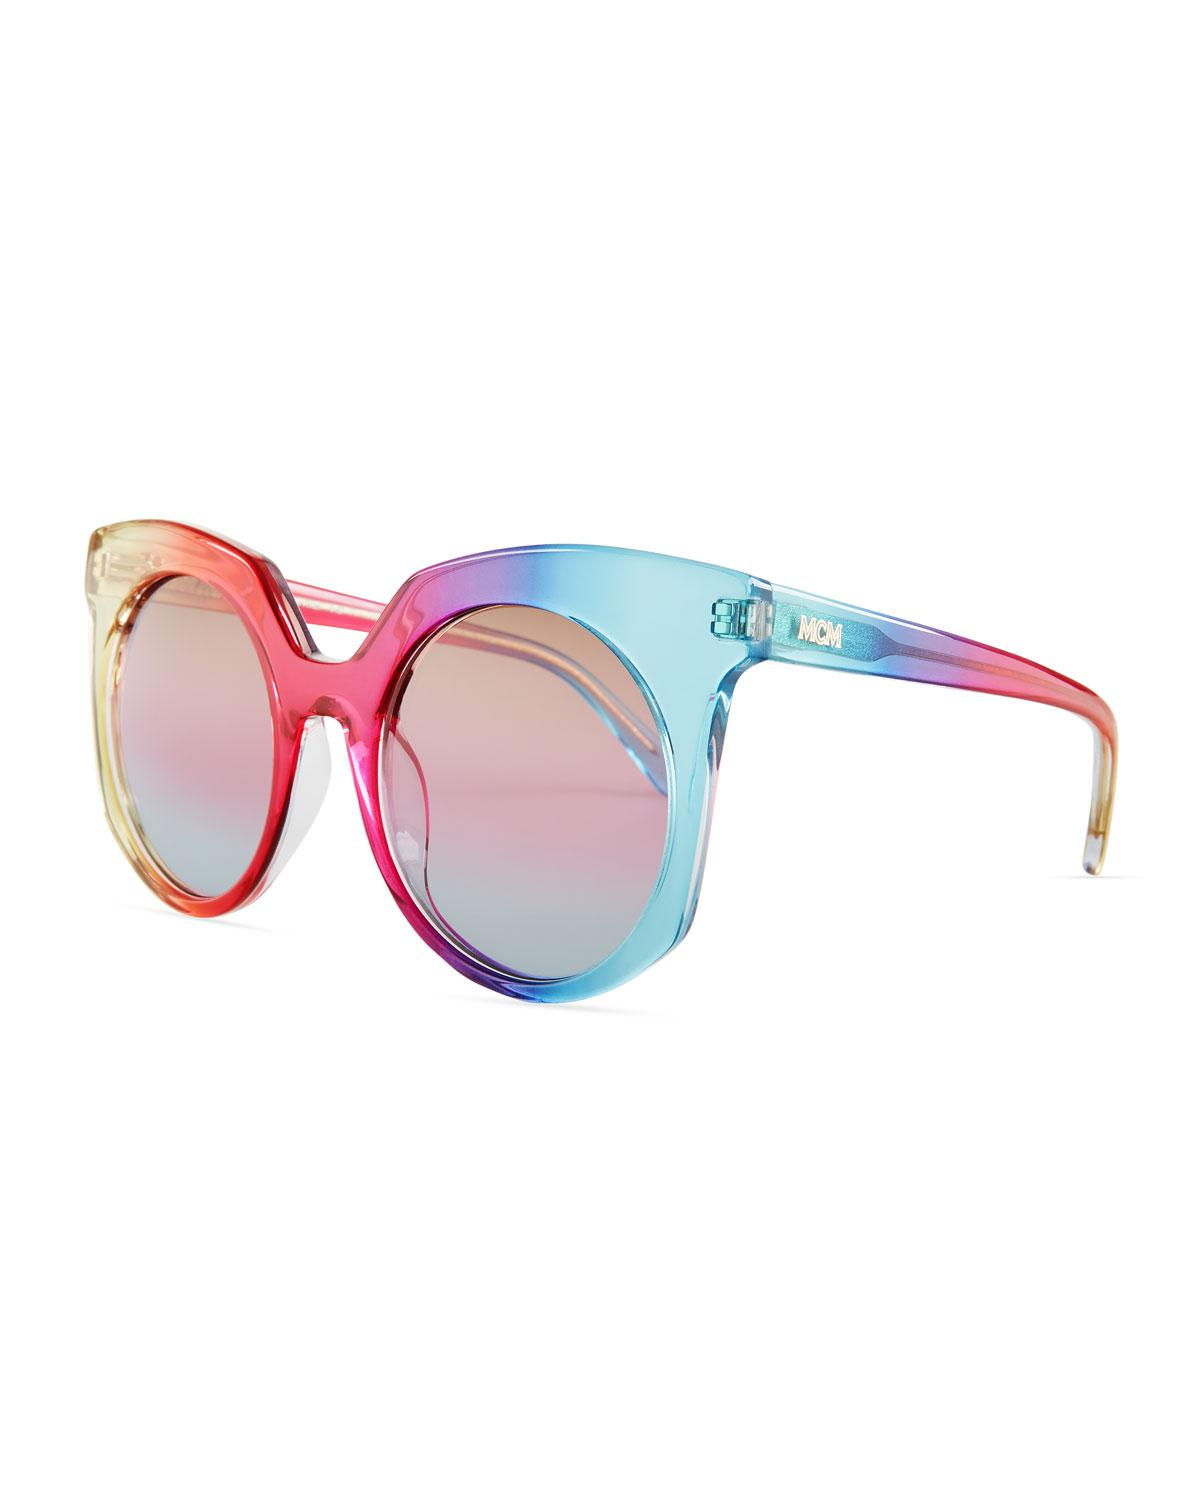 764e80d912e40 MCM Punk Rainbow Cat-eye Sunglasses - Lyst